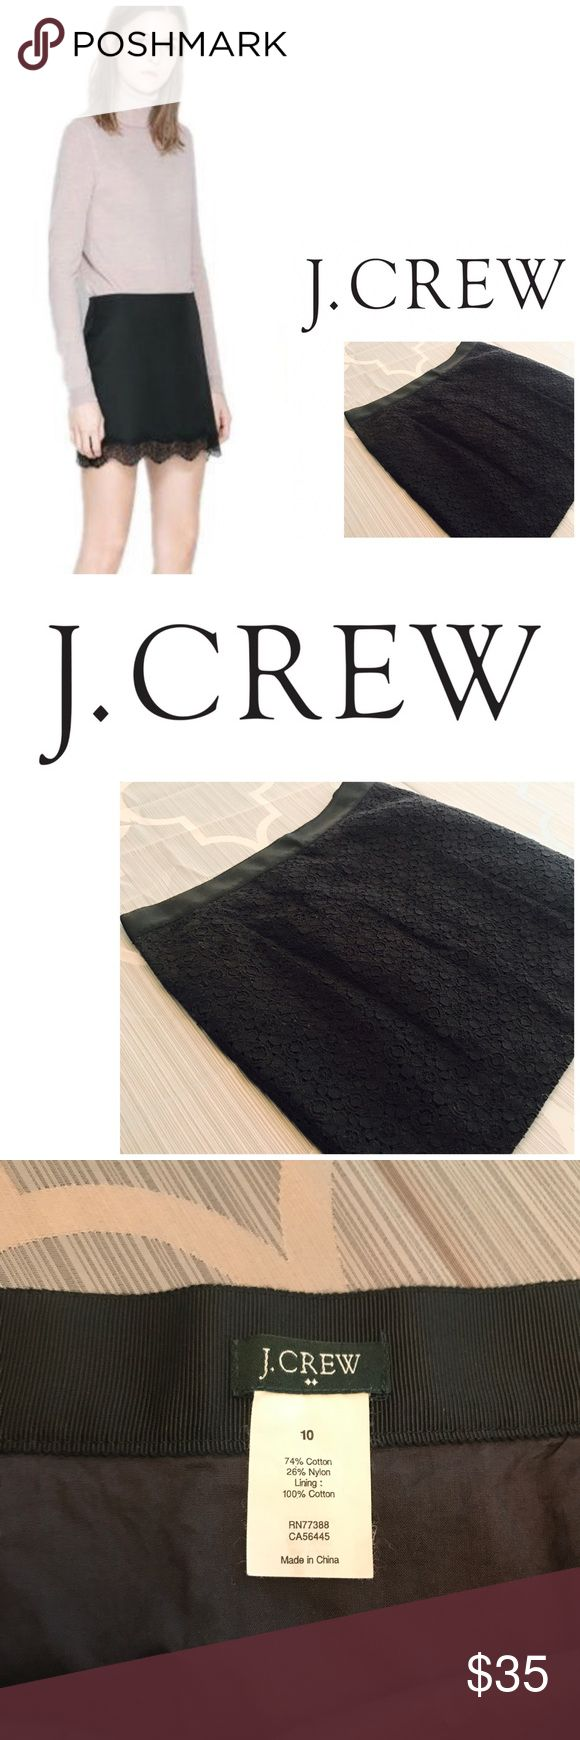 J. Crew Black Skirt size 10 J. Crew Black Mini Midi depending on height lol. Skirt size 10 model photo is stock for reference only. Preowned.  Great condition. Measurements in listing J. Crew Skirts